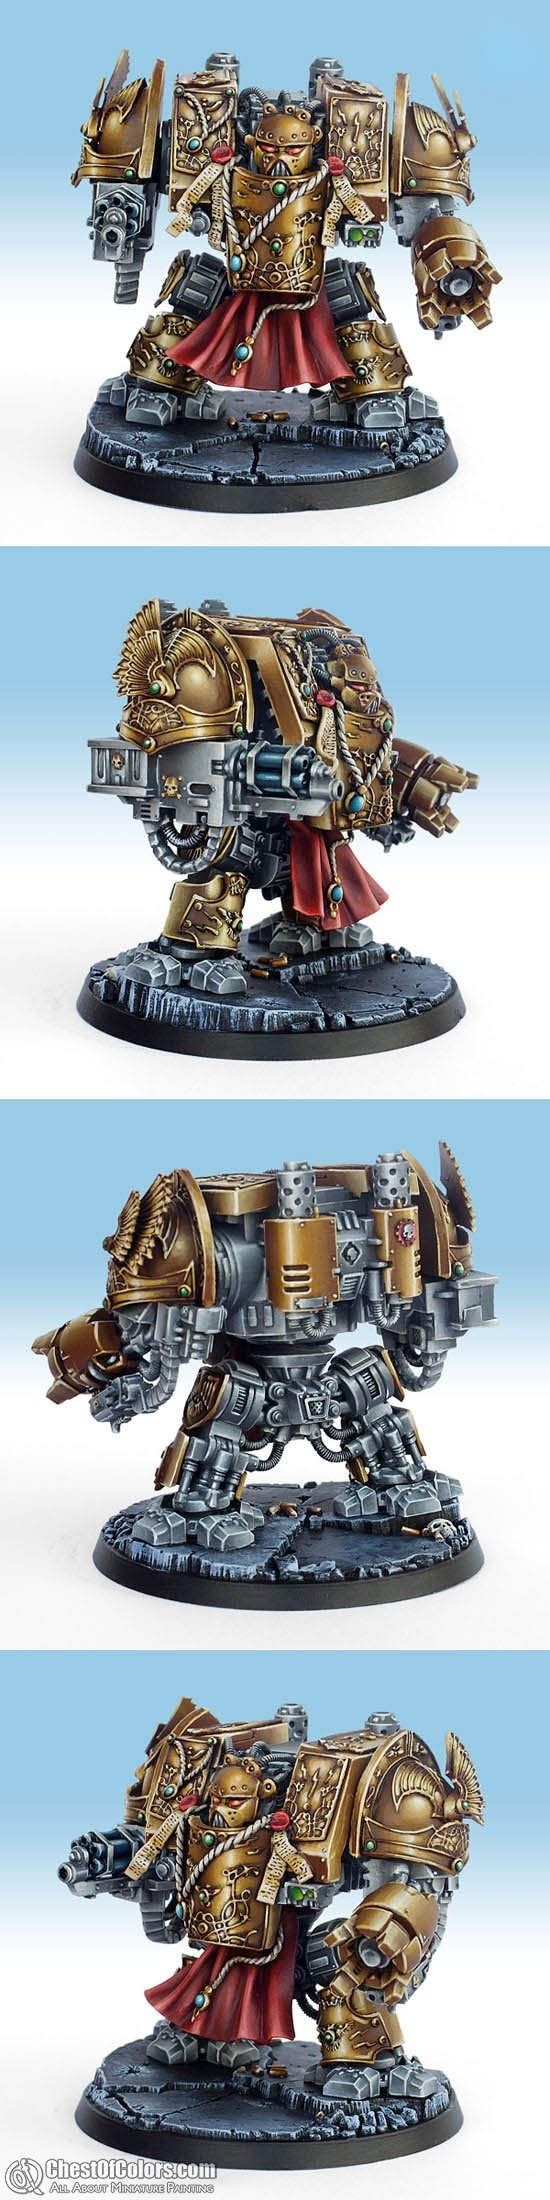 Adeptus Custodes Dreadnought painted by Benathai for a private collector. More Custodians in this album: http://chestofcolors.com/gallery/benathais-works/adeptus-custodes/